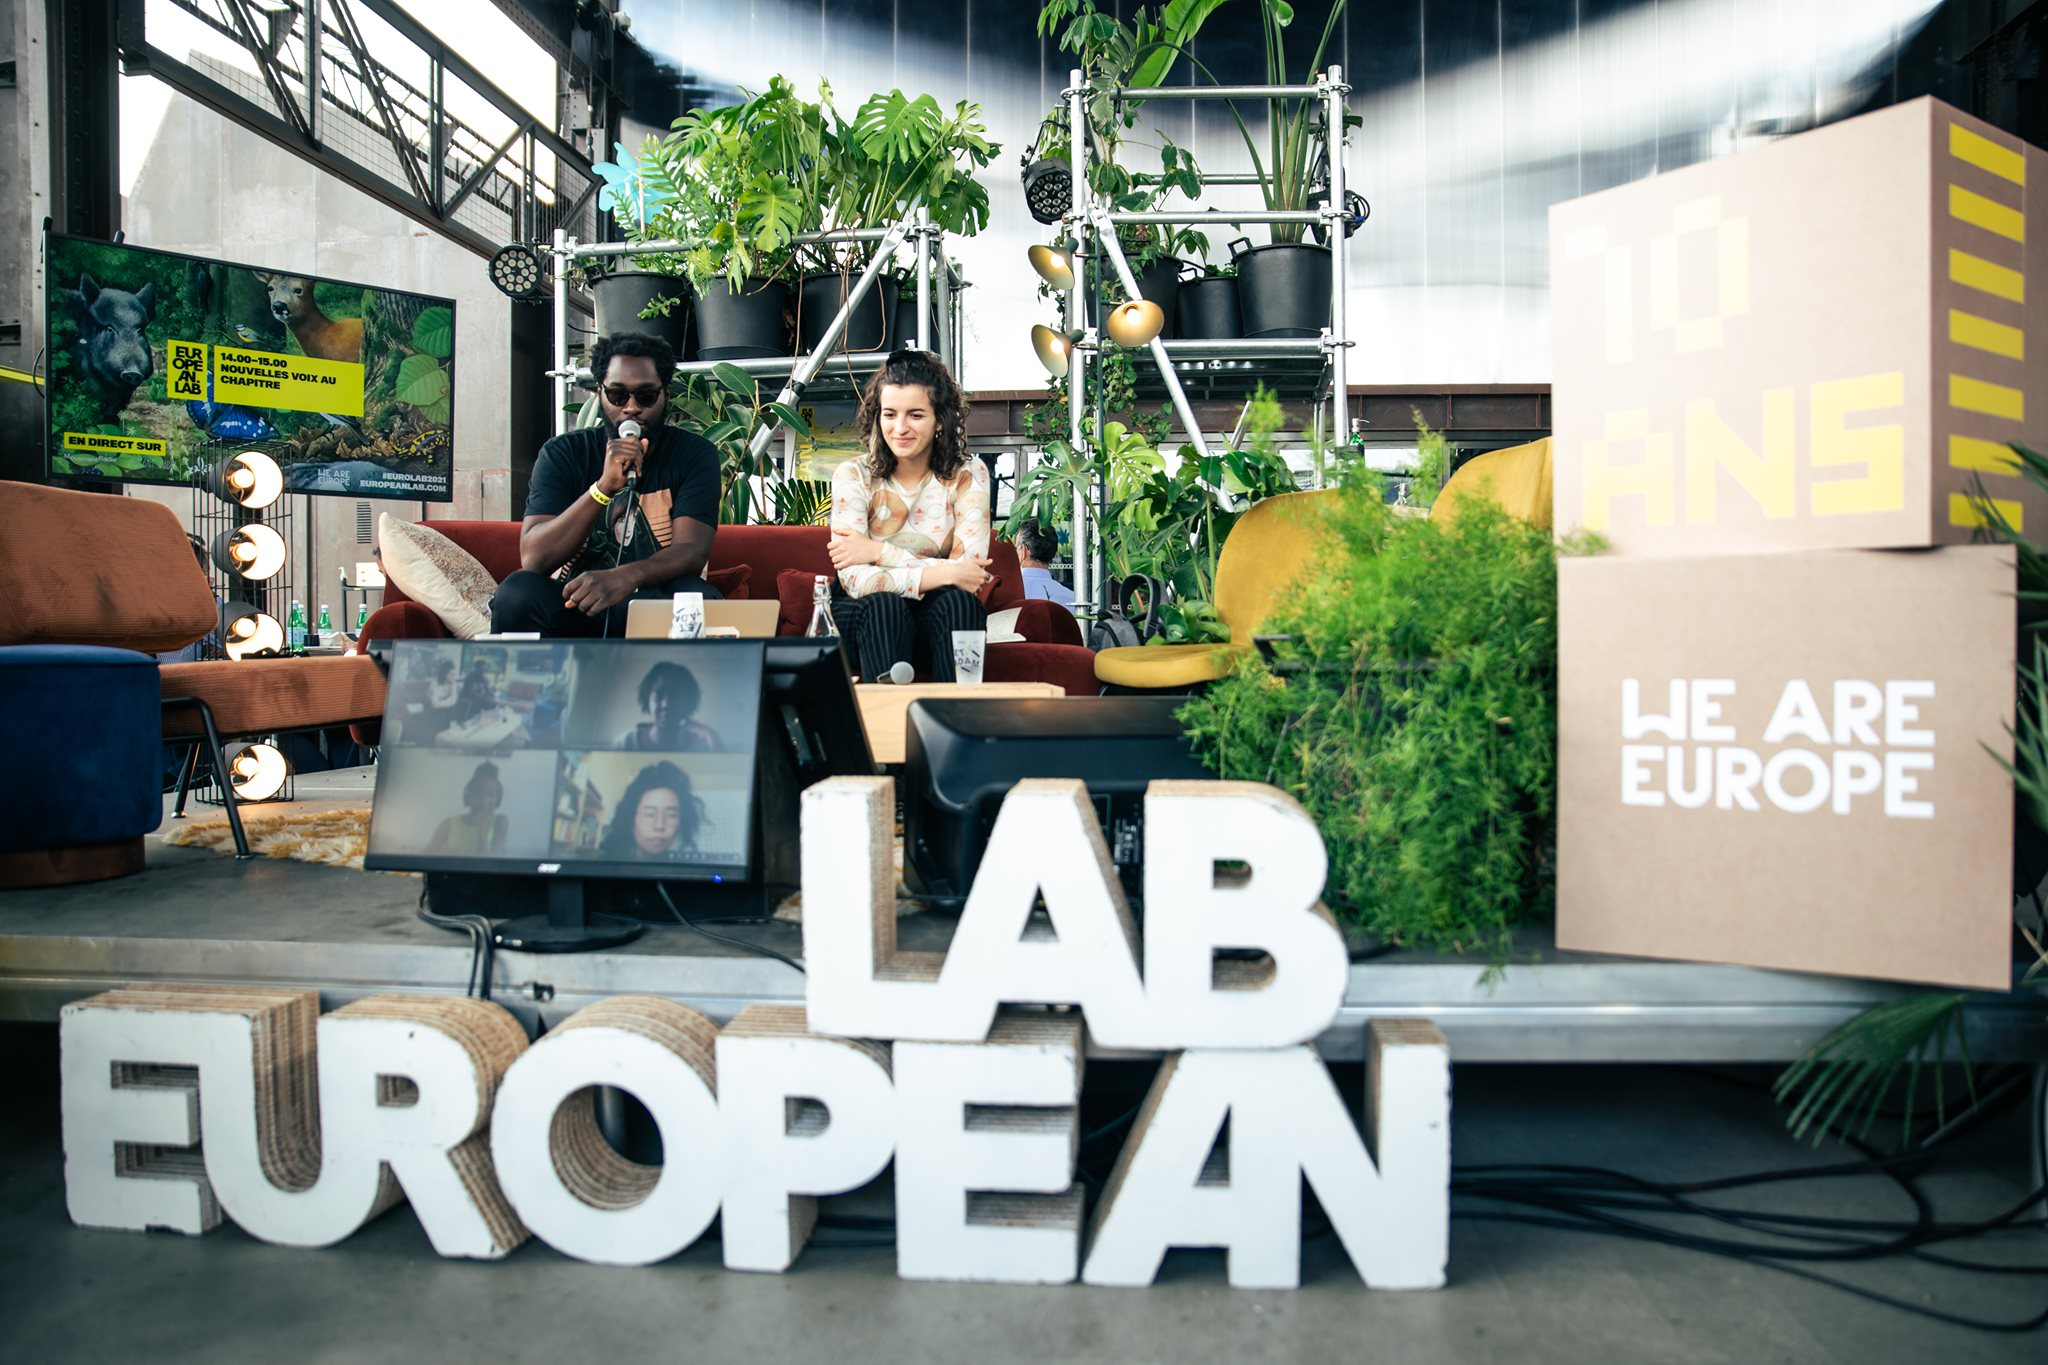 Giving a platform @ We are Europe